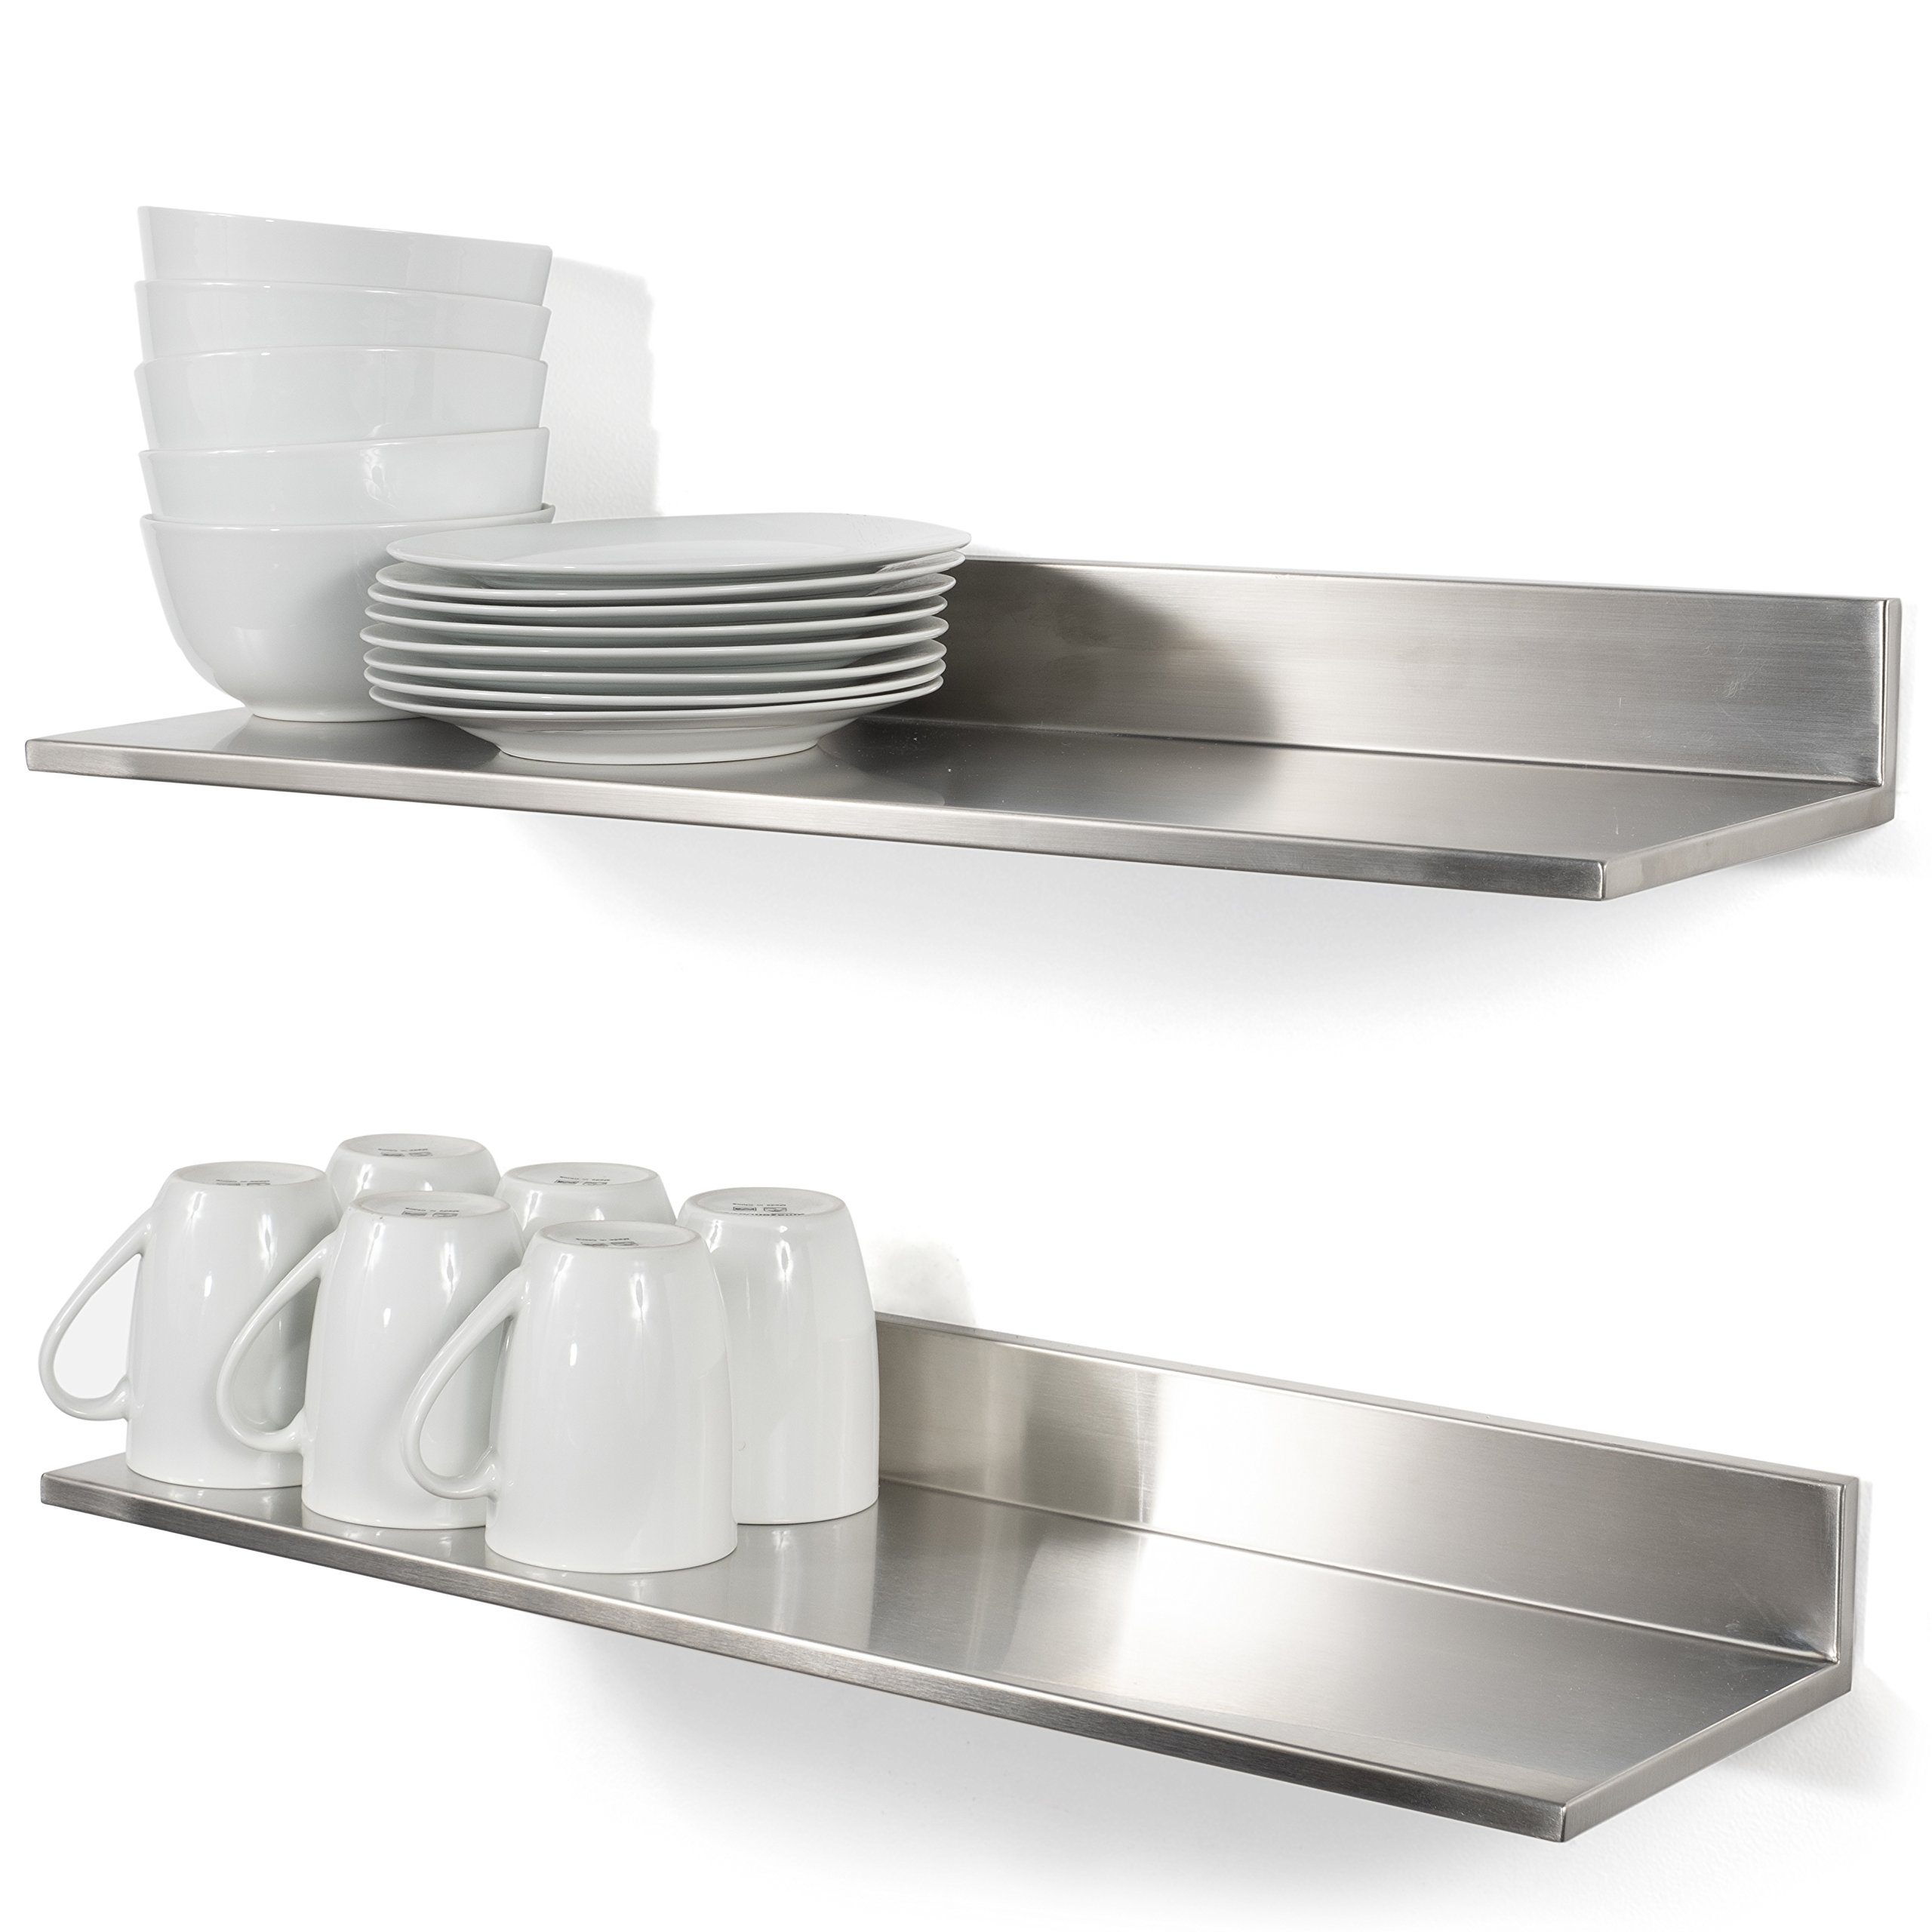 Durable Stainless Steel Wall Mountable 23.60 Inch Kitchen Shelf for Restaurants Businesses and Eateries (2) by RACK&HOOK